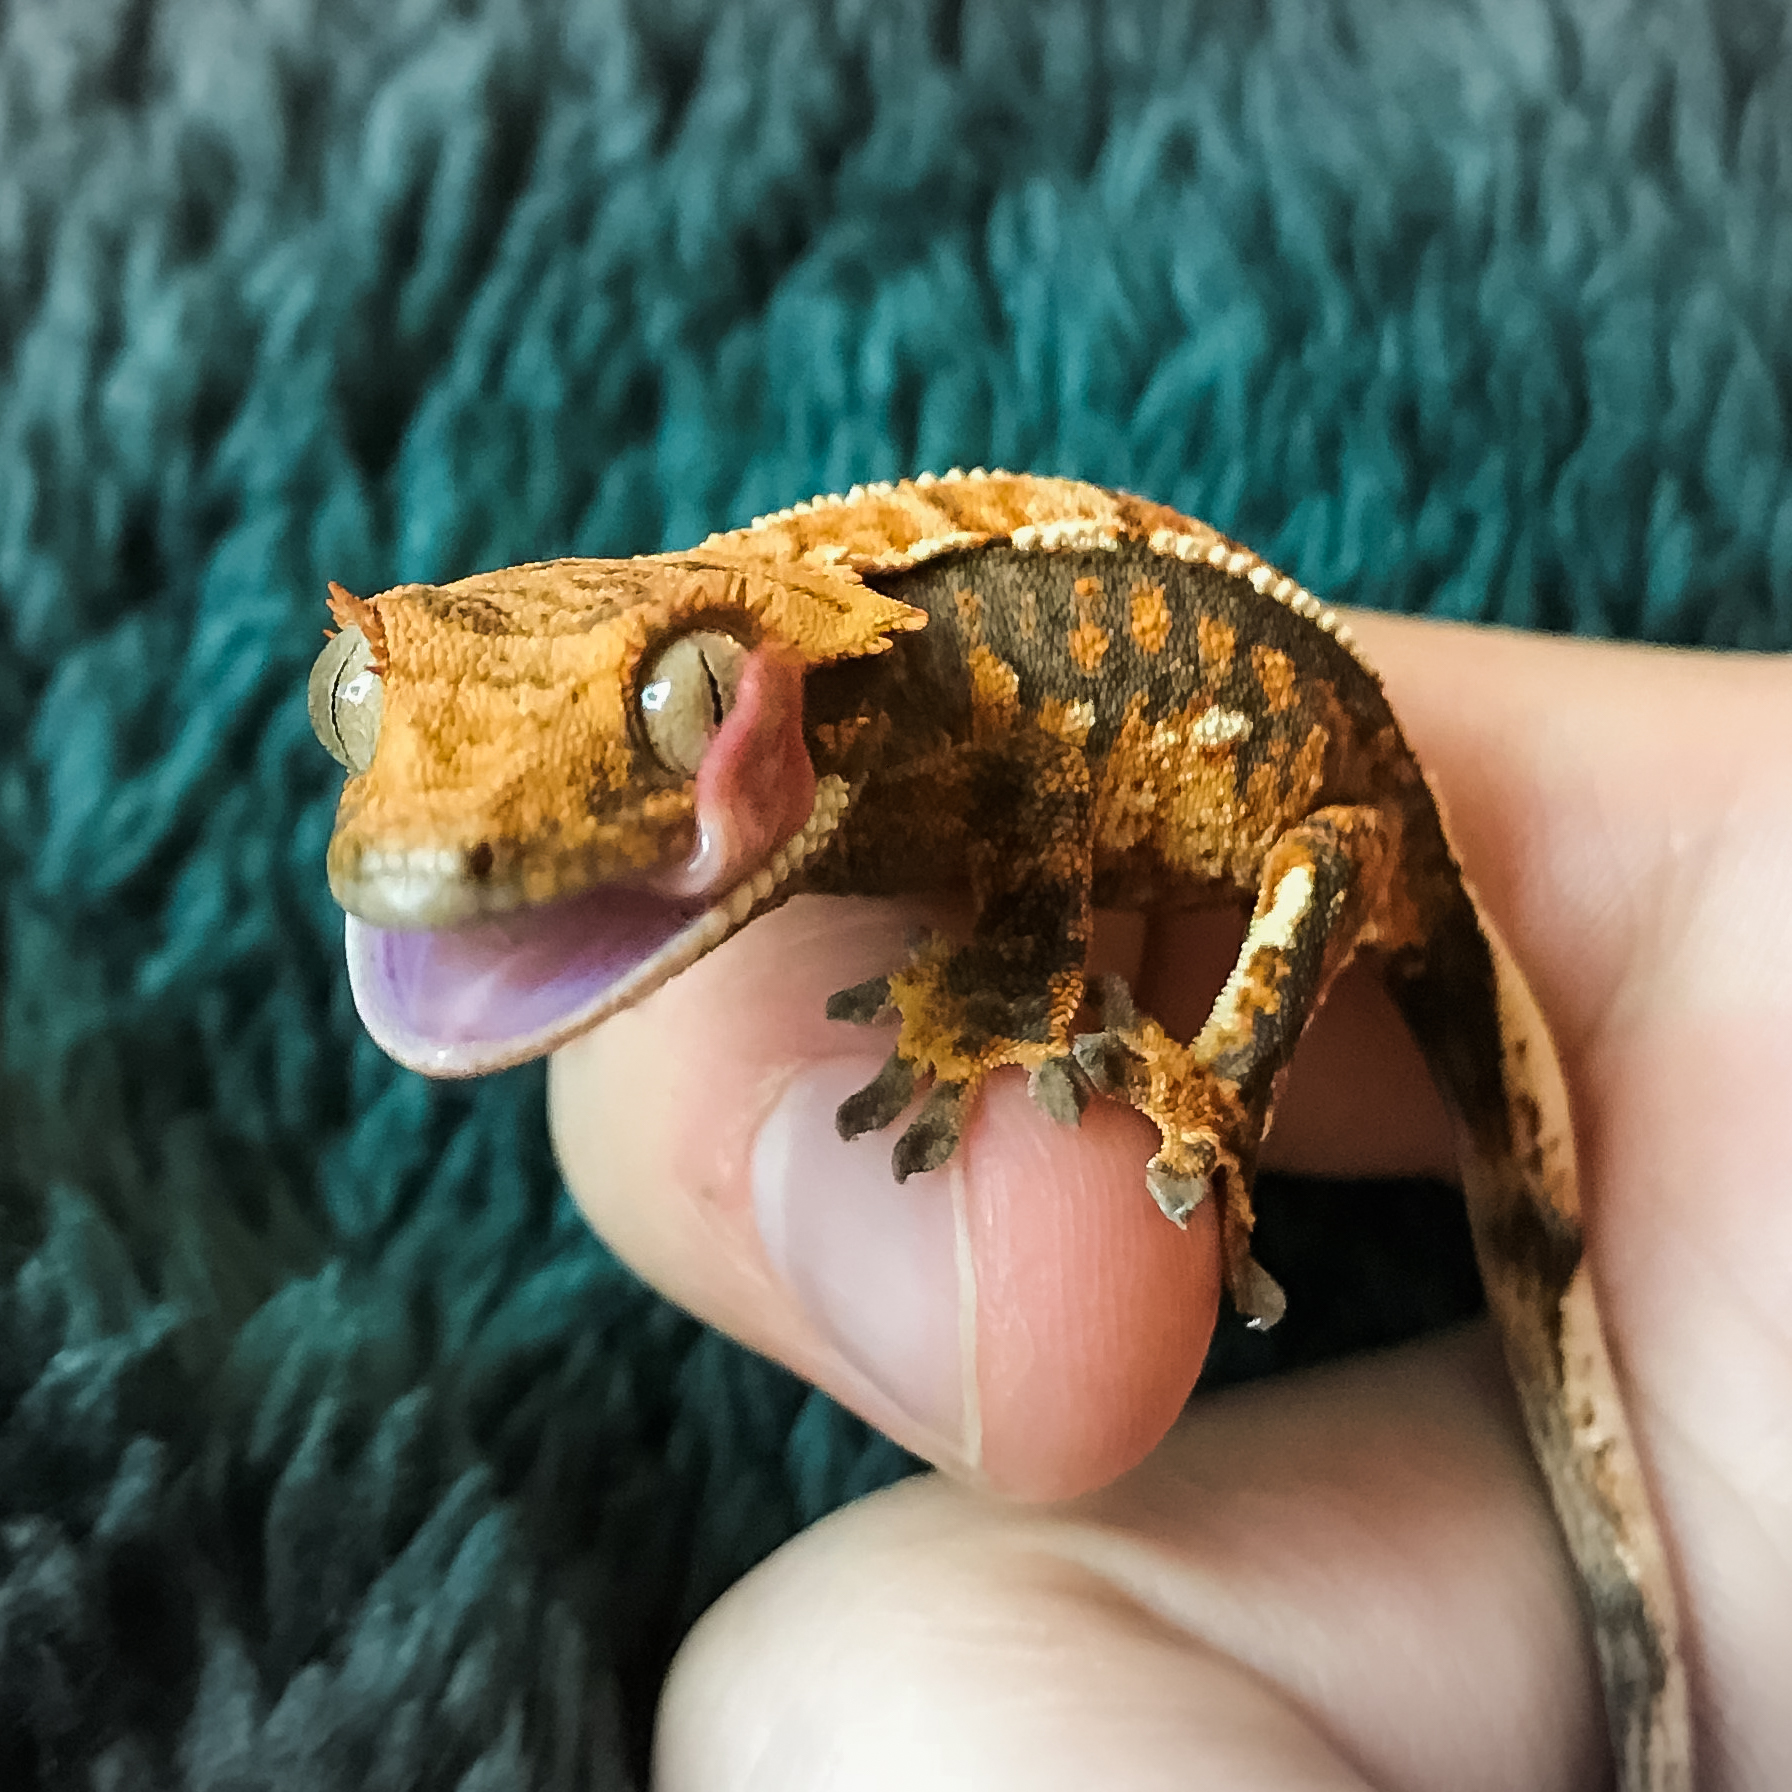 Caring for a Crested Gecko | American Veterinary Hospital